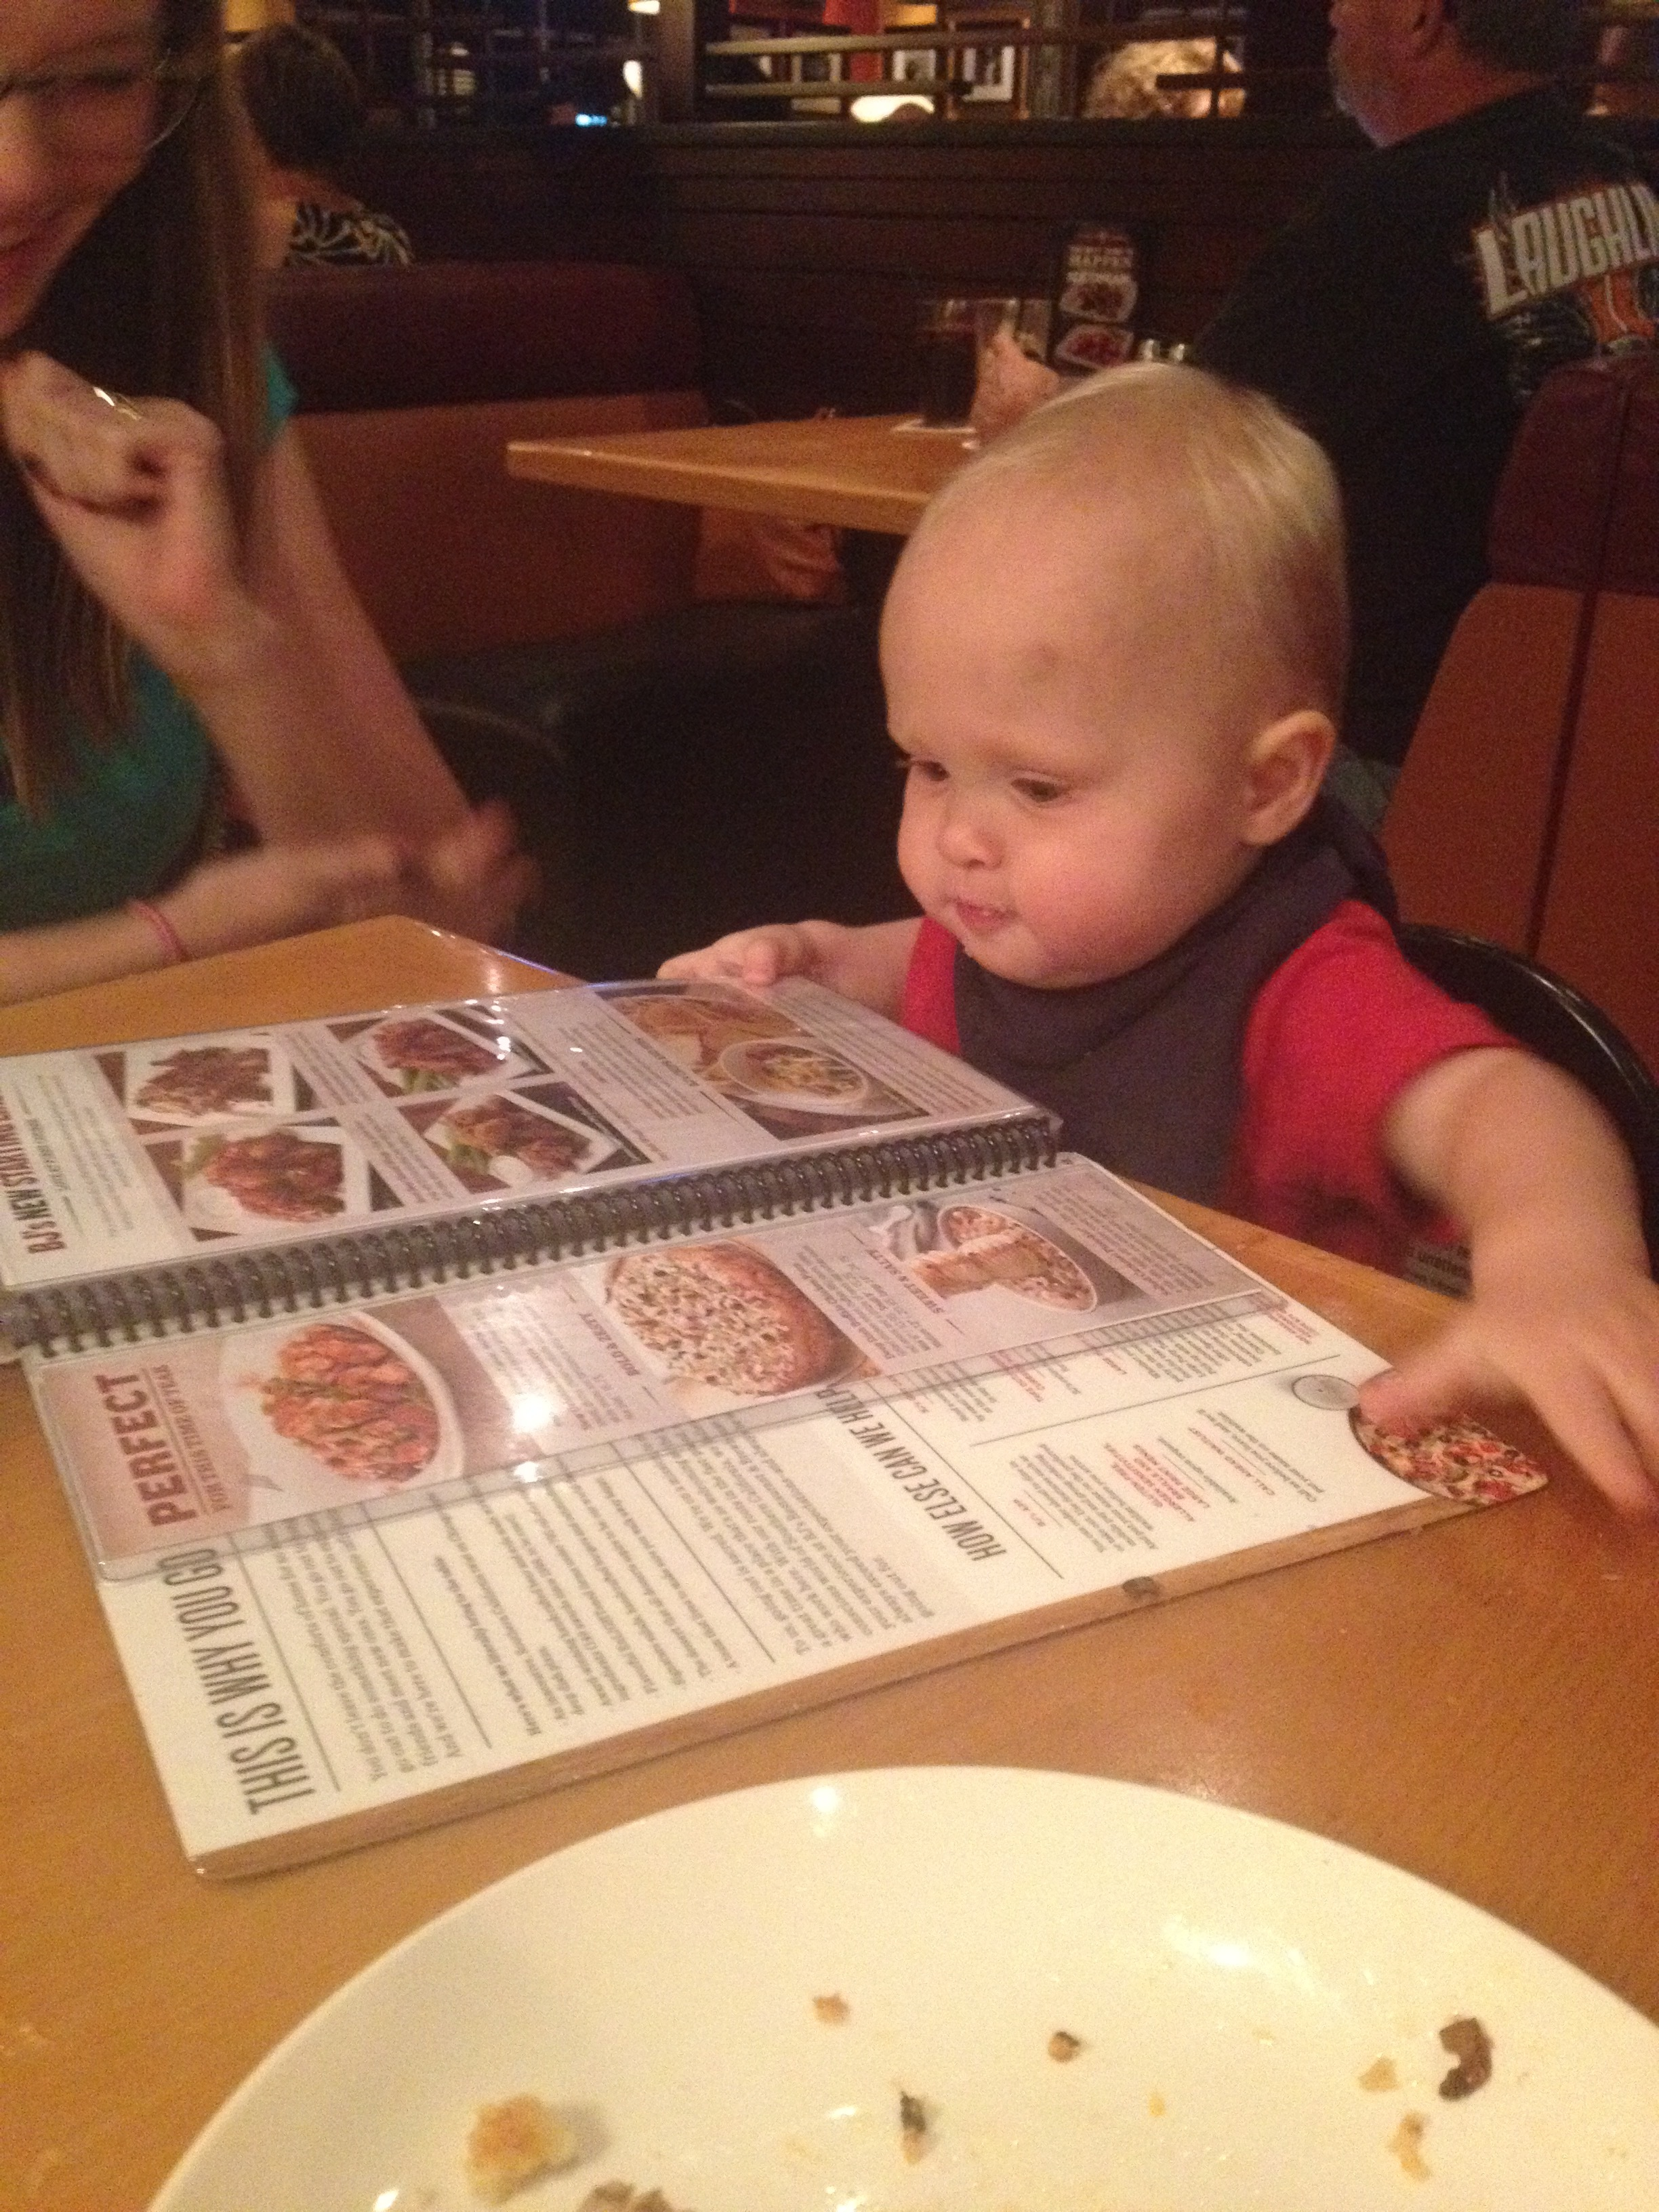 henry pondering what to order